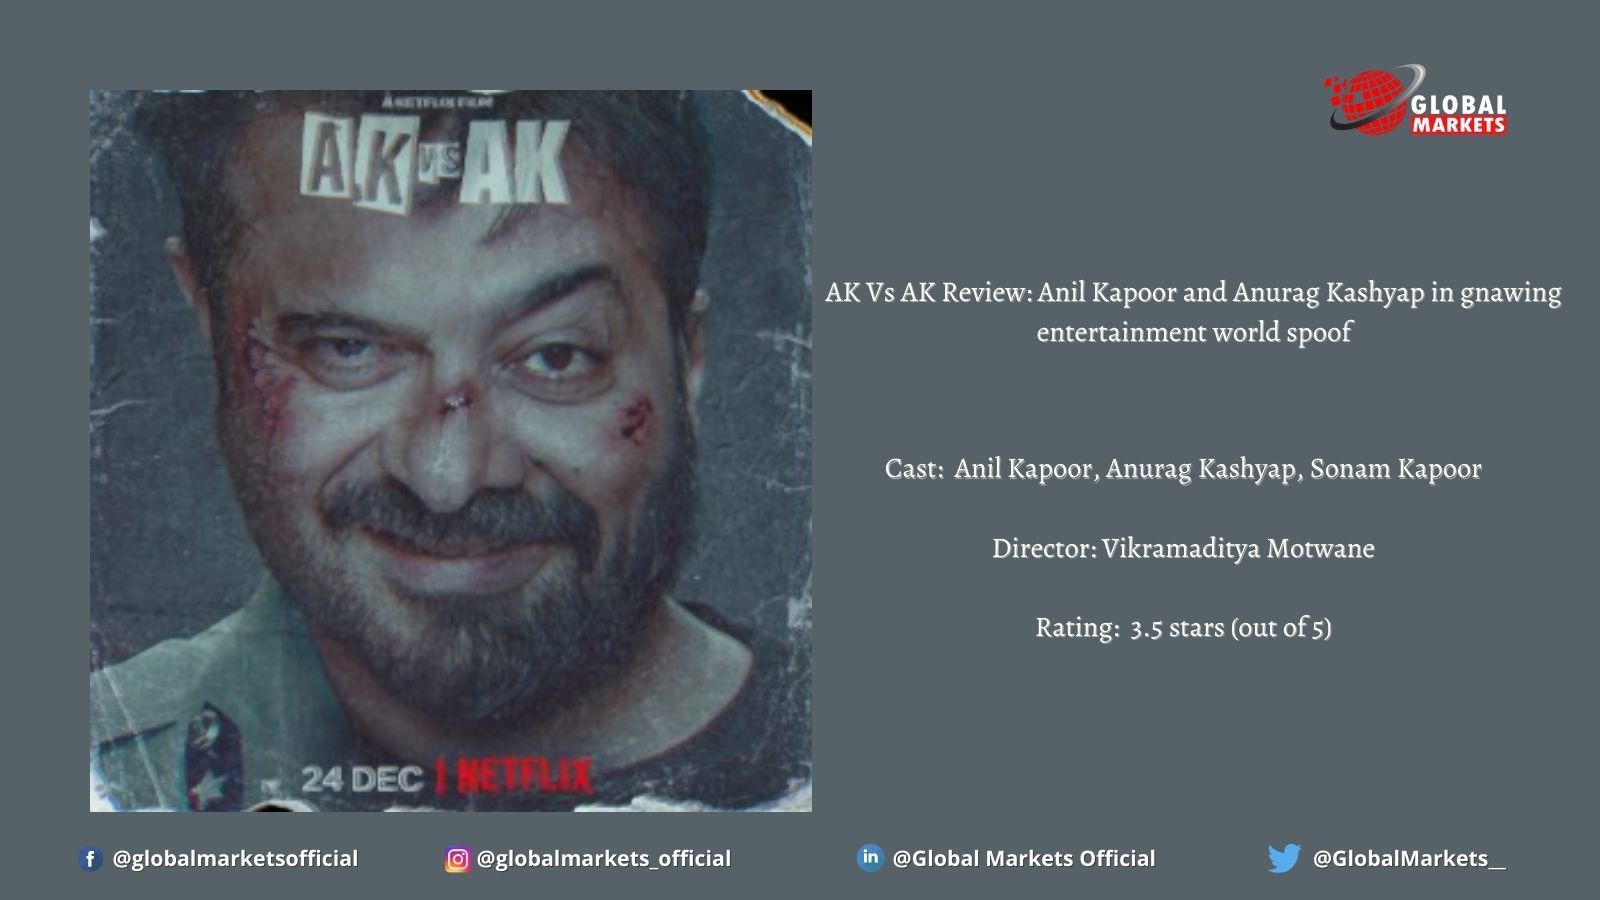 AK Vs AK Review : Anil Kapoor and Anurag Kashyap in gnawing entertainment world spoof